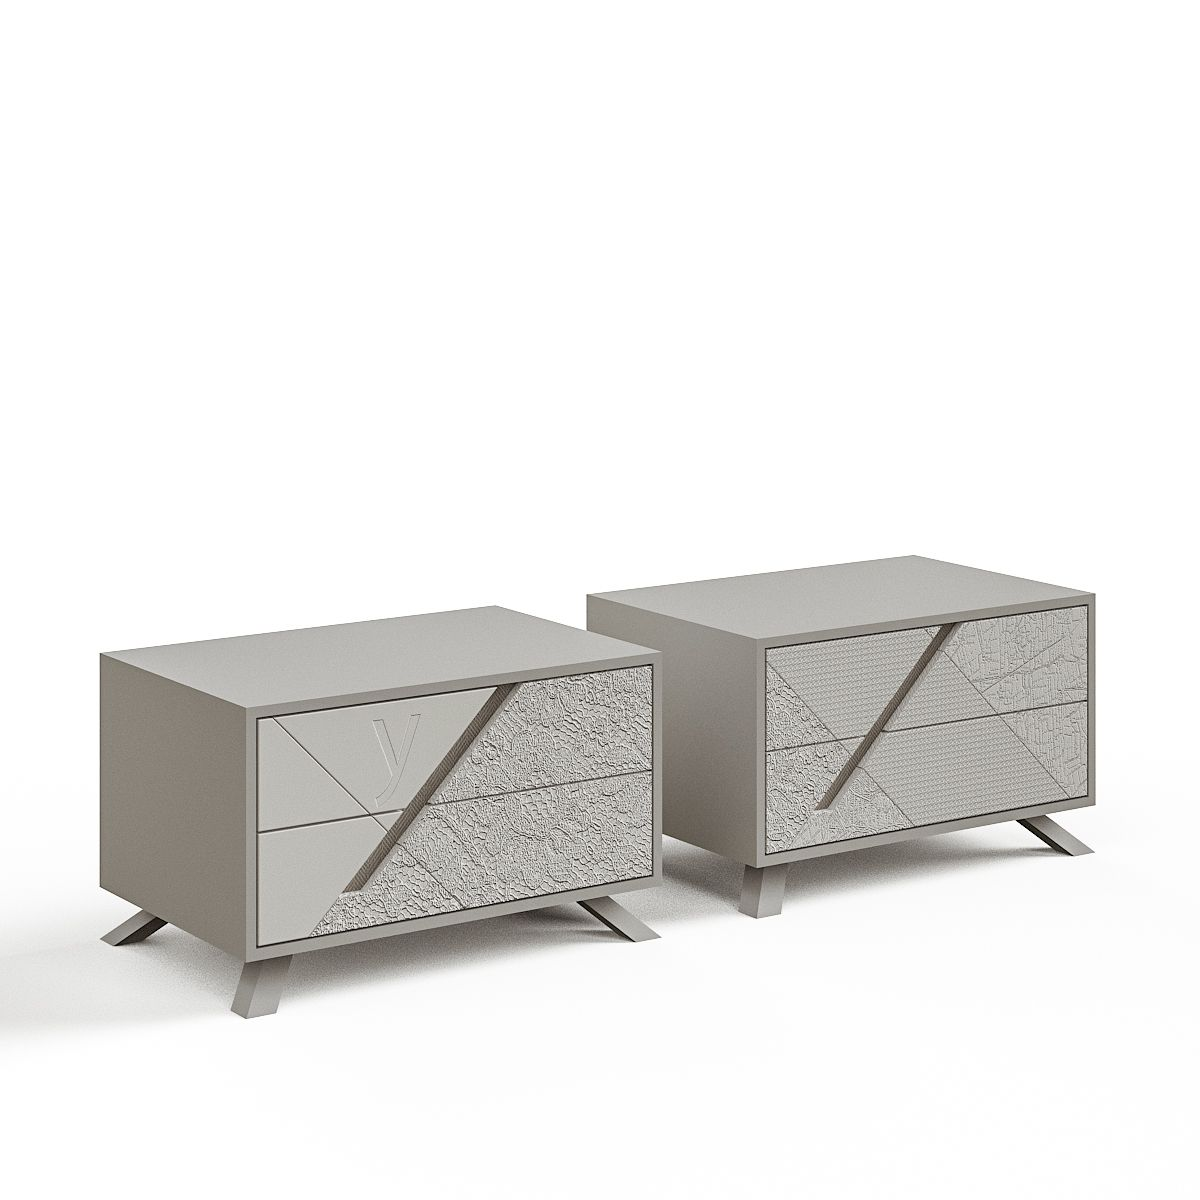 Furniture Collection 681